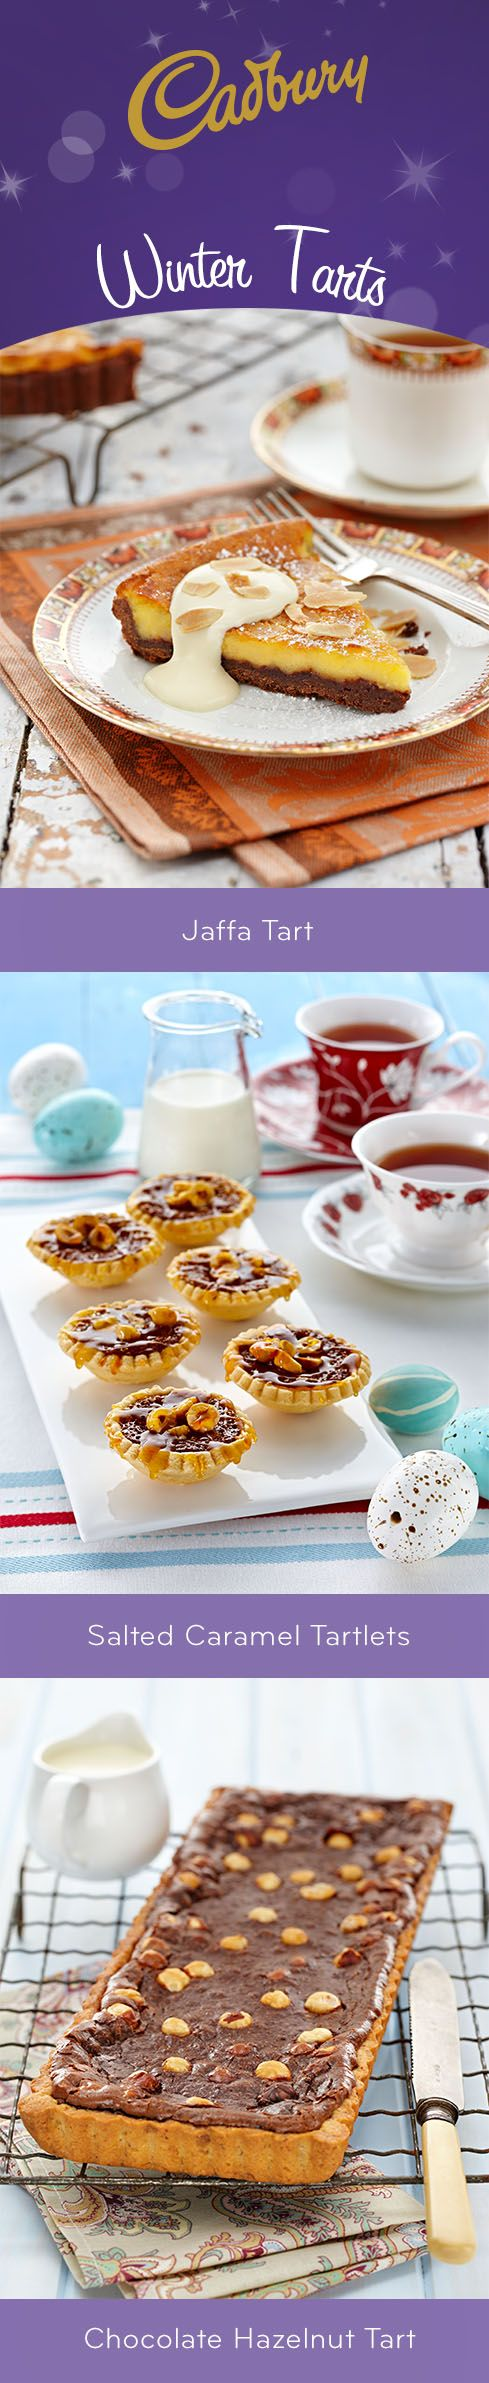 Nothing could be more comforting on a cold winter's day than a delicious tart! #bakeitcadbury #baking #chocolate #dessert #tarts